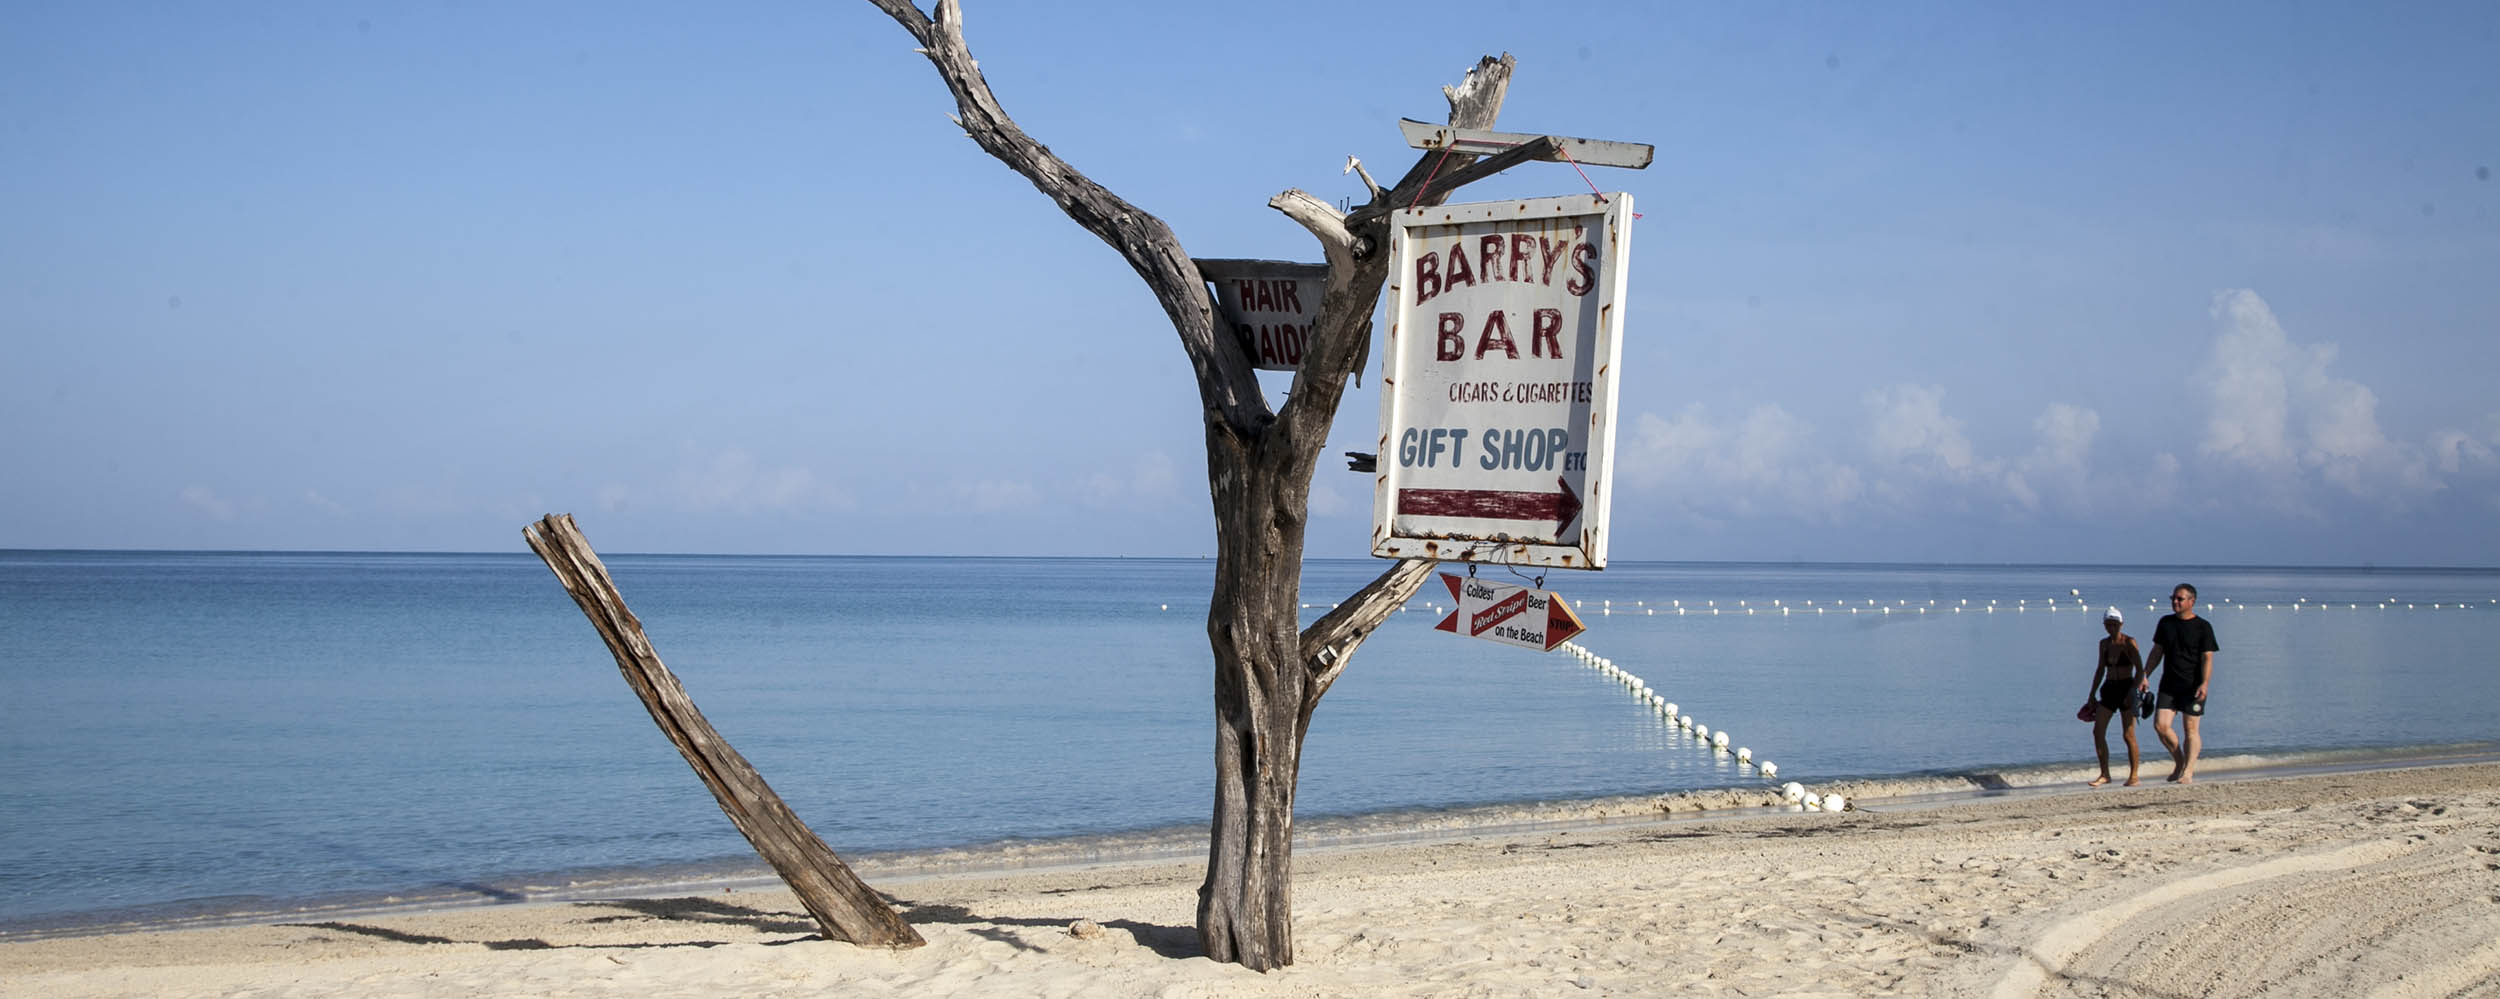 The Famous Negril Beach, Negril Jamaica